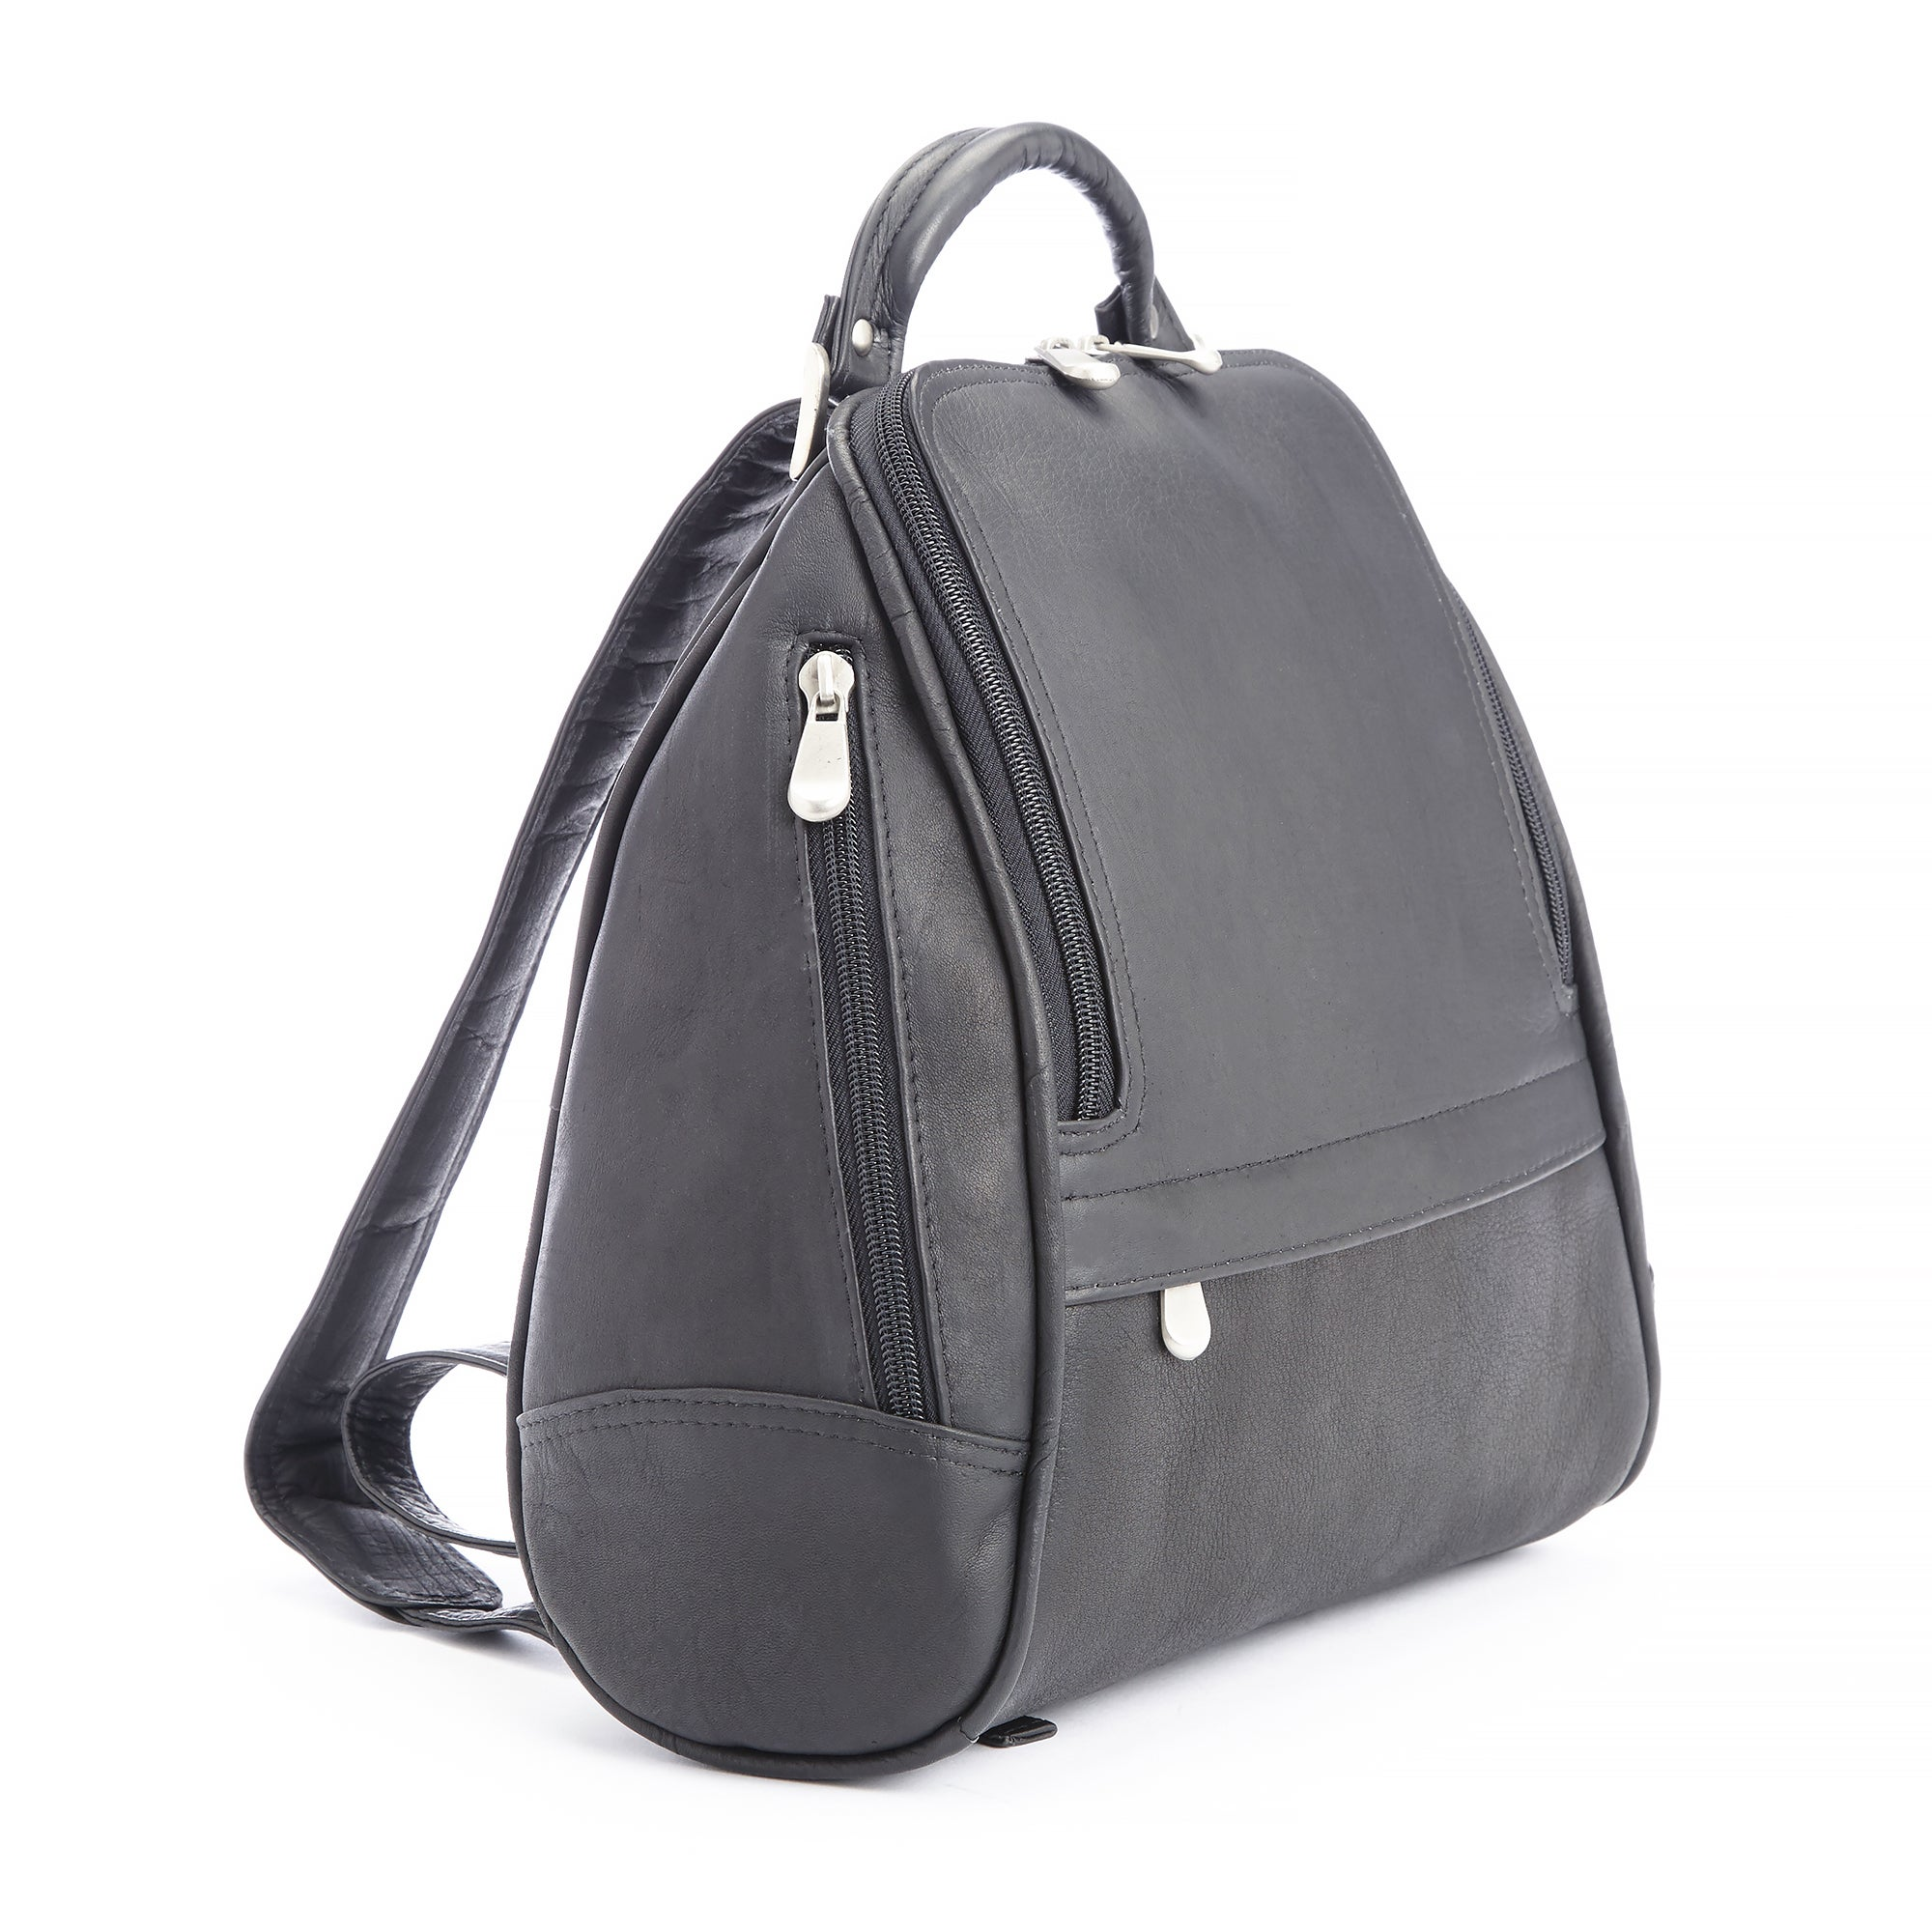 Shop Royce Leather Handcrafted Colombian Leather Luxury Sling Backpack -  Free Shipping Today - Overstock - 10658048 7f89a4e474158